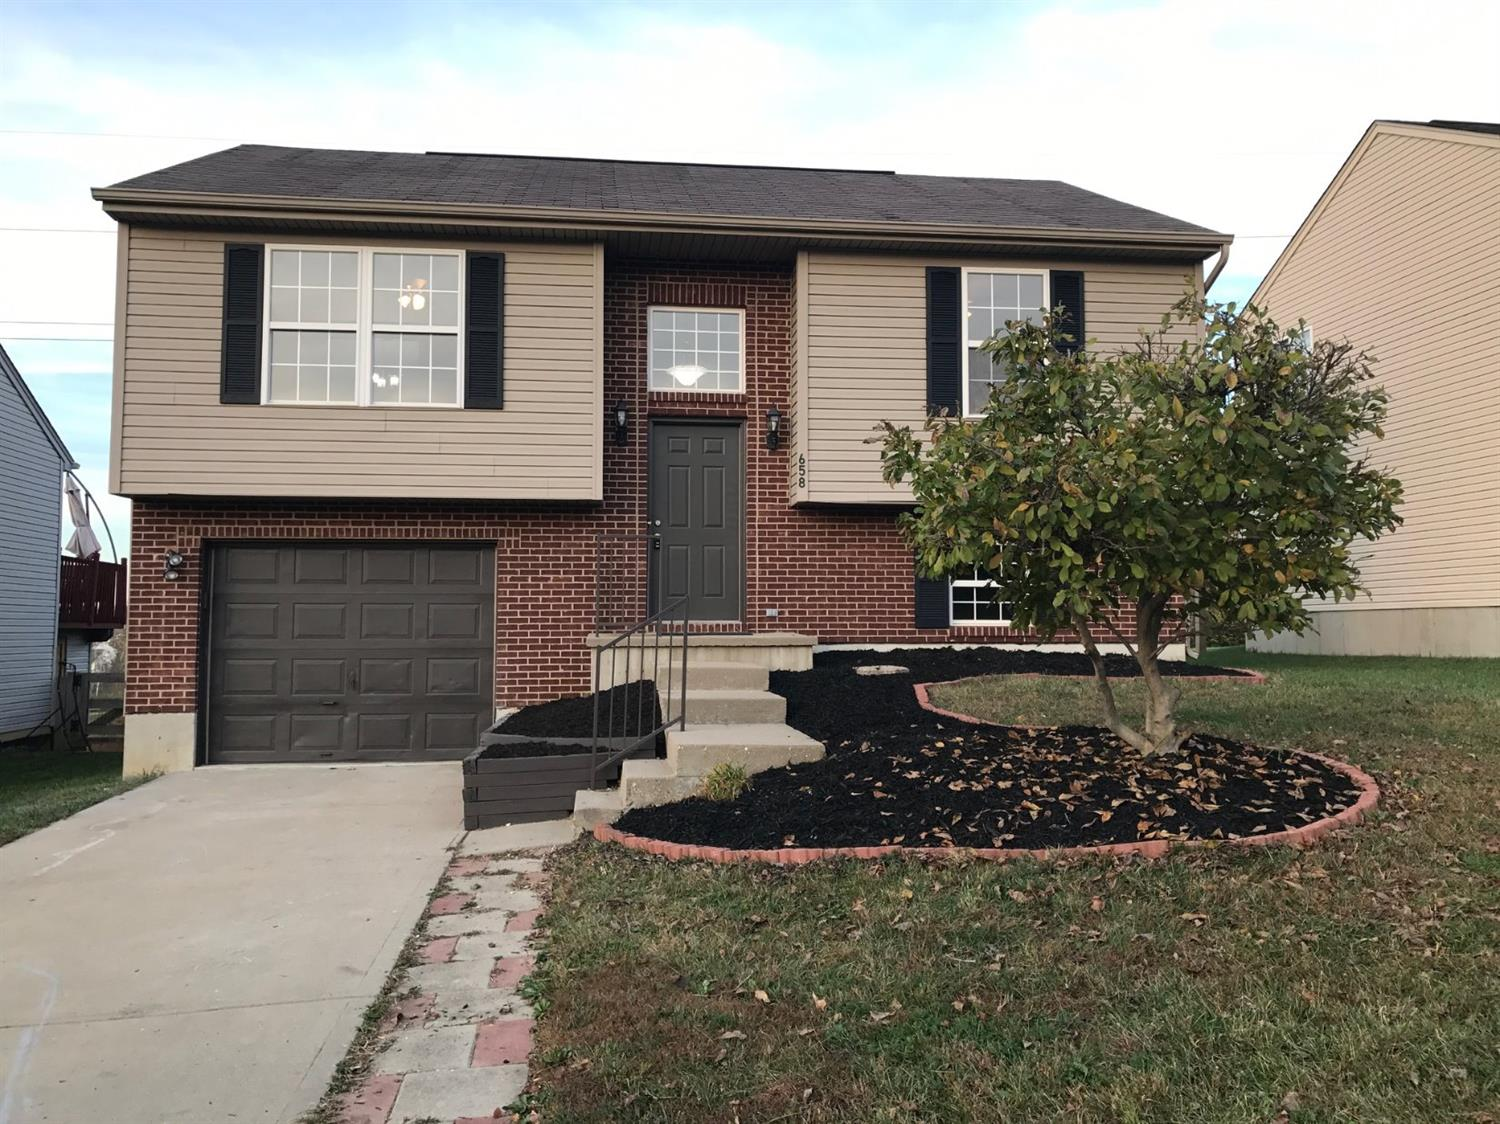 Photo 1 for 658 Lyonia Dr Independence, KY 41051